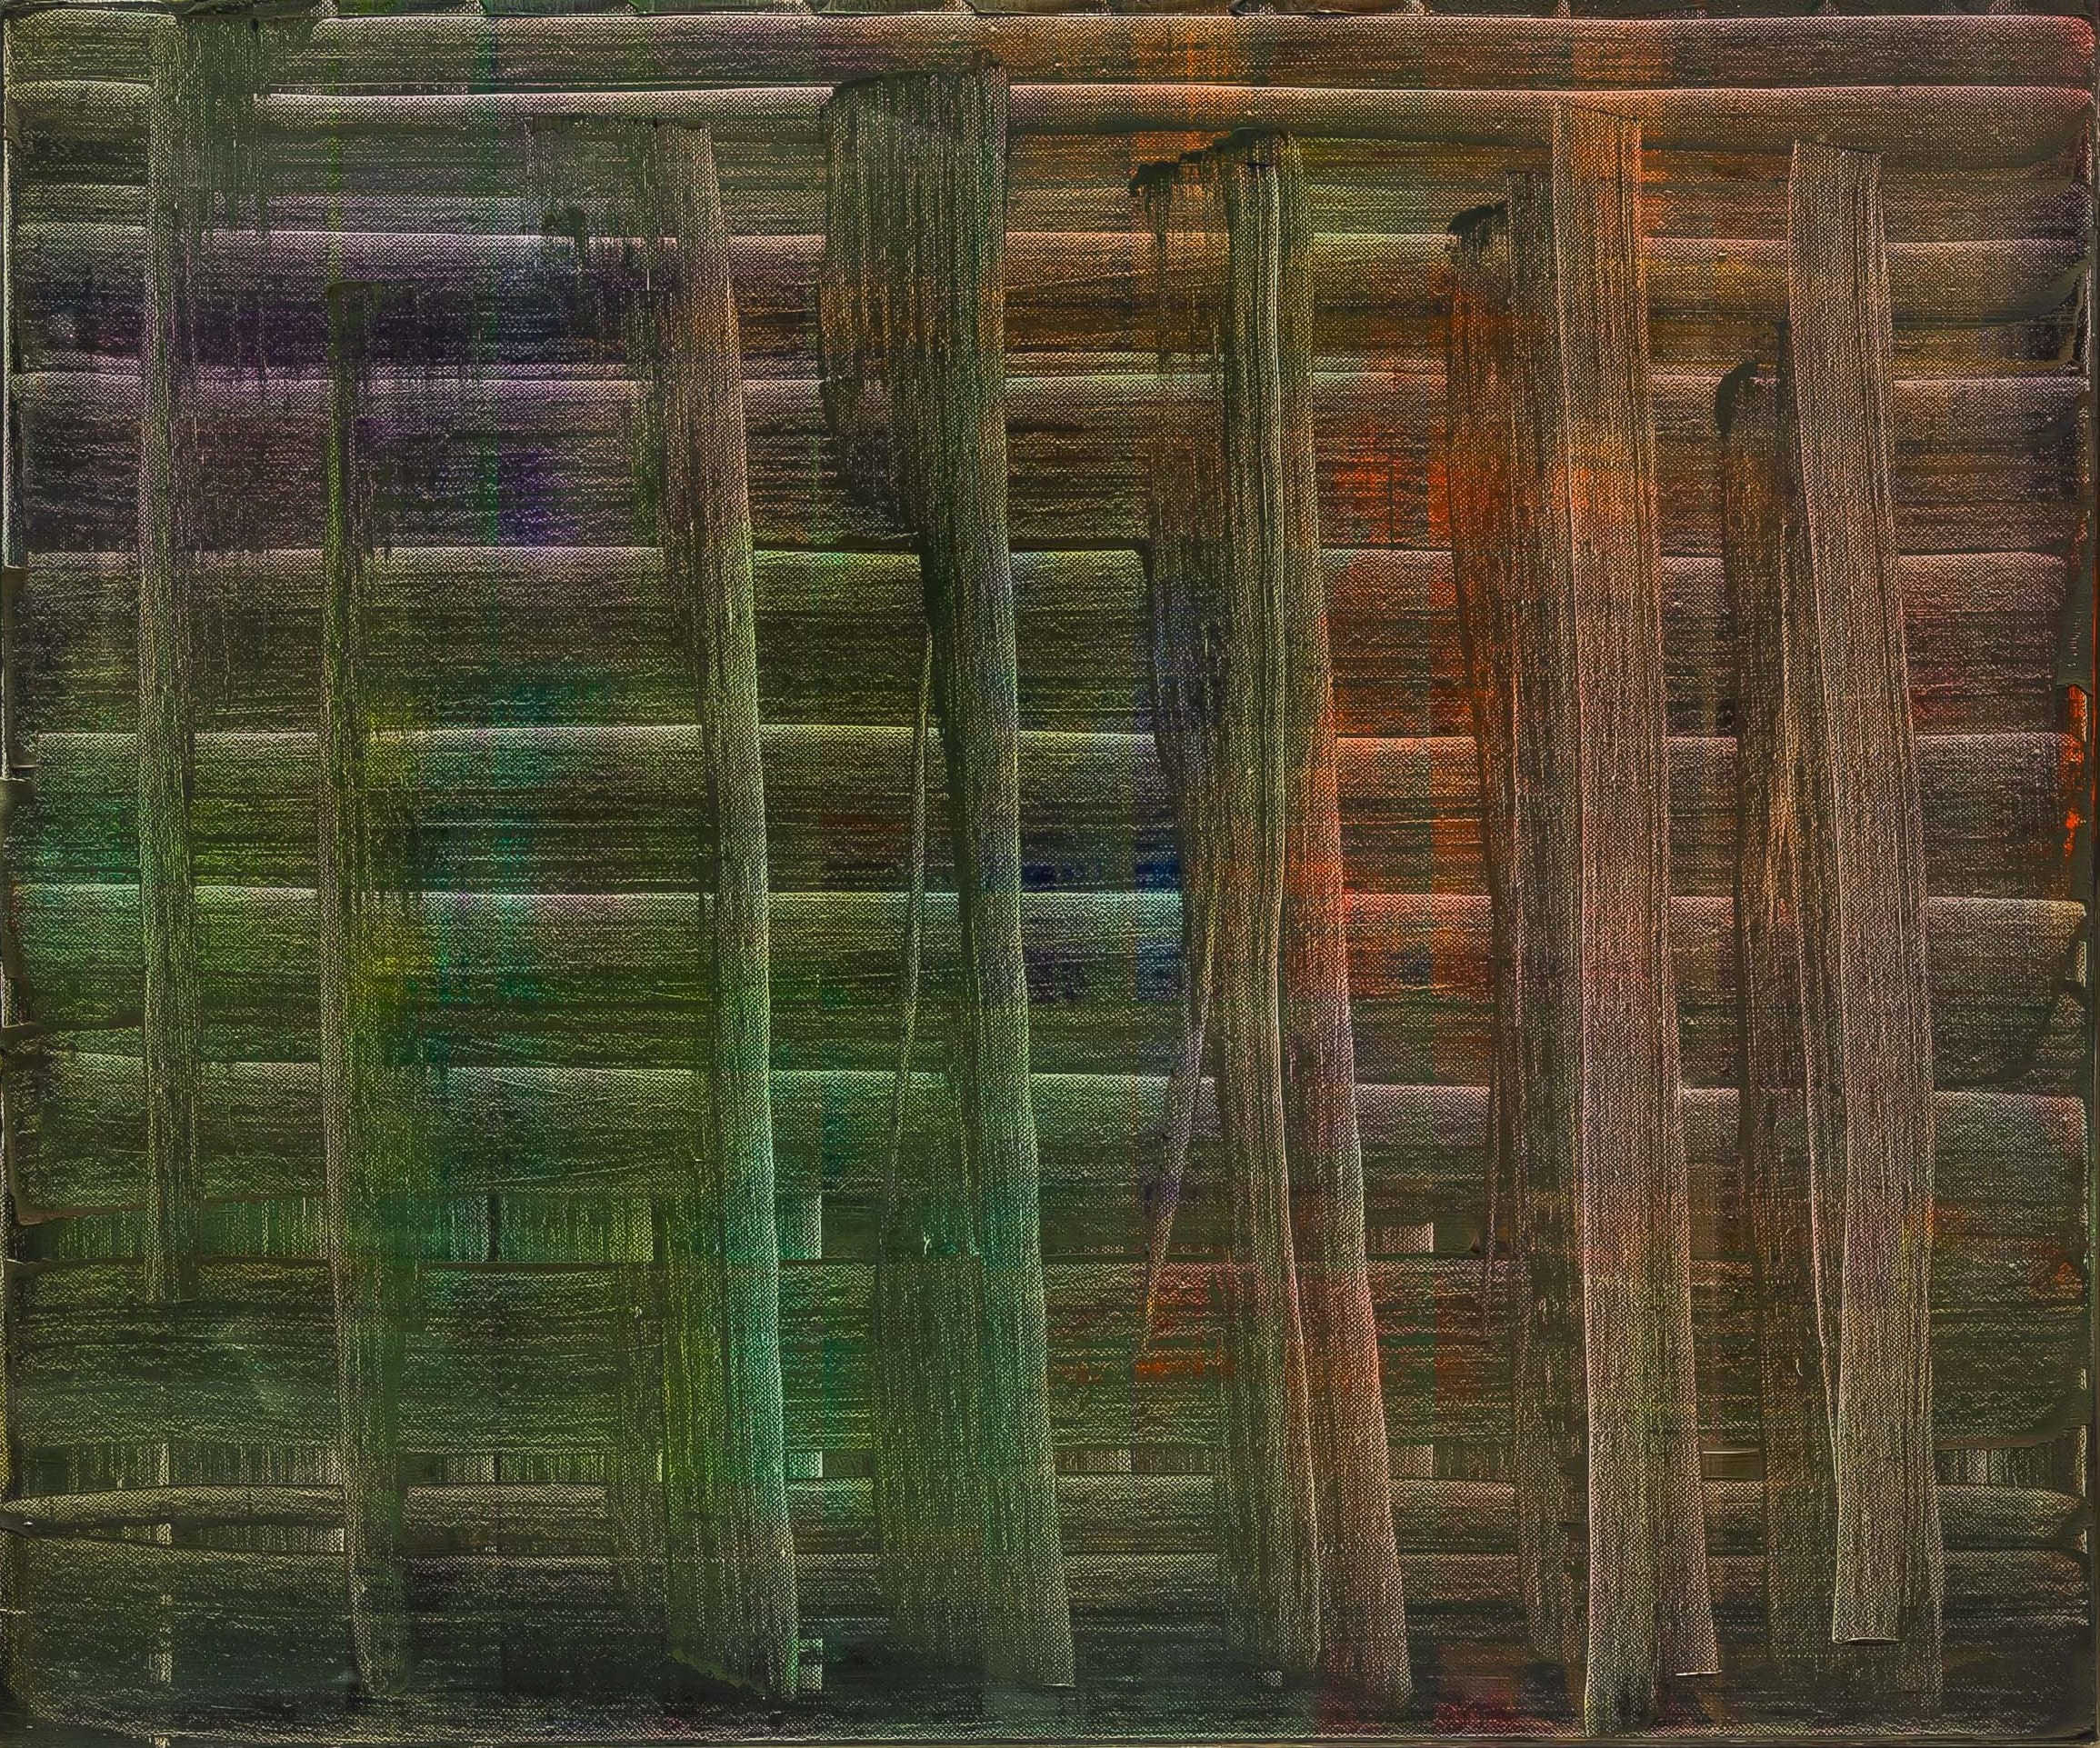 Gerhard Richter Abstraktes Bild Abstract Painting 1992 Ben Brown